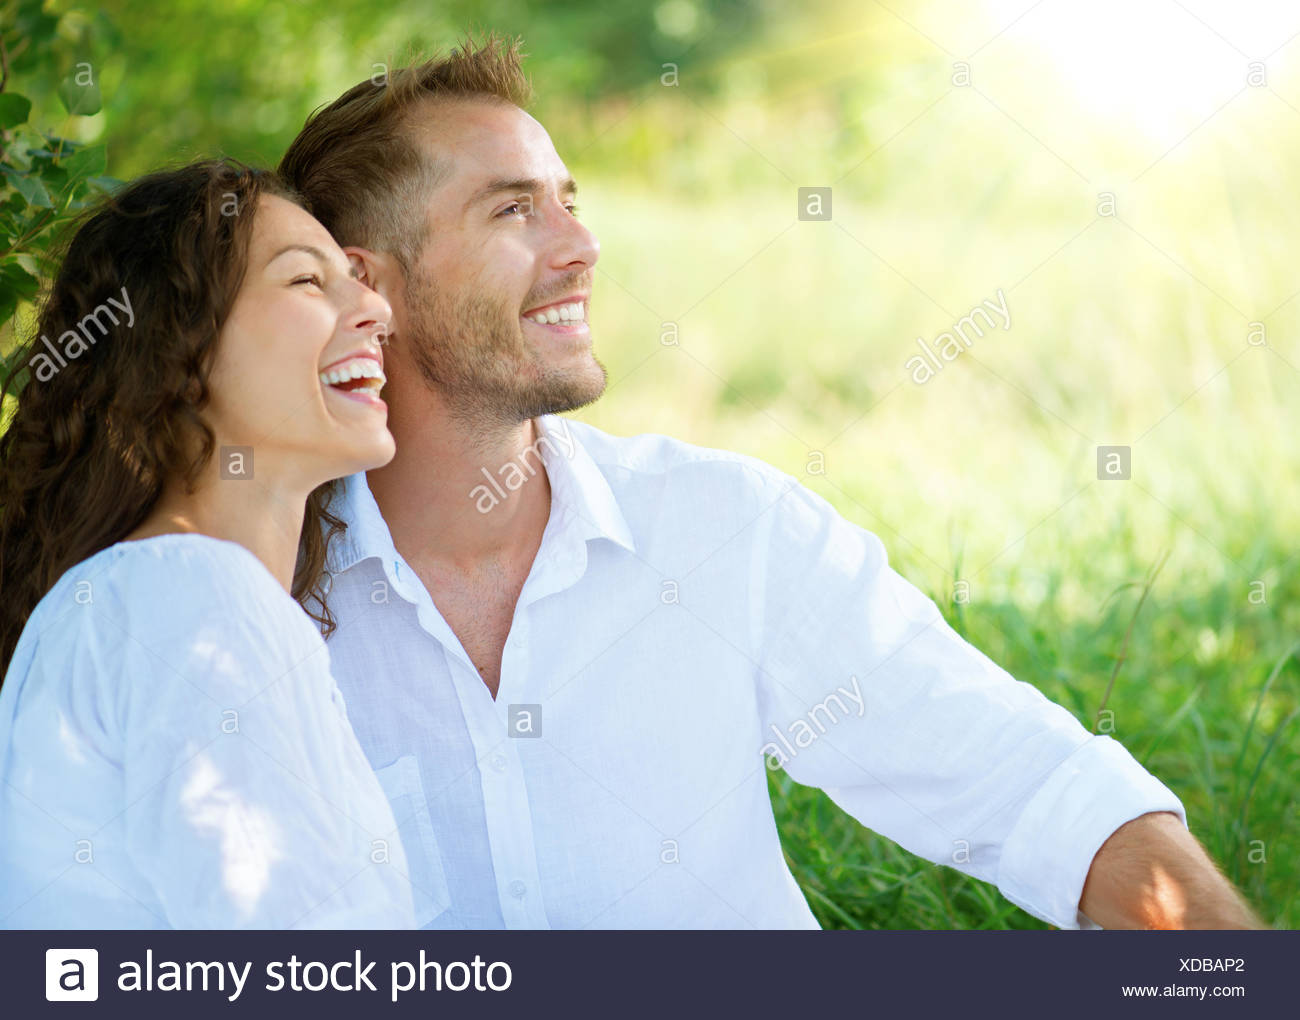 Happy Smiling Couple Relaxing in a Park - Stock Image